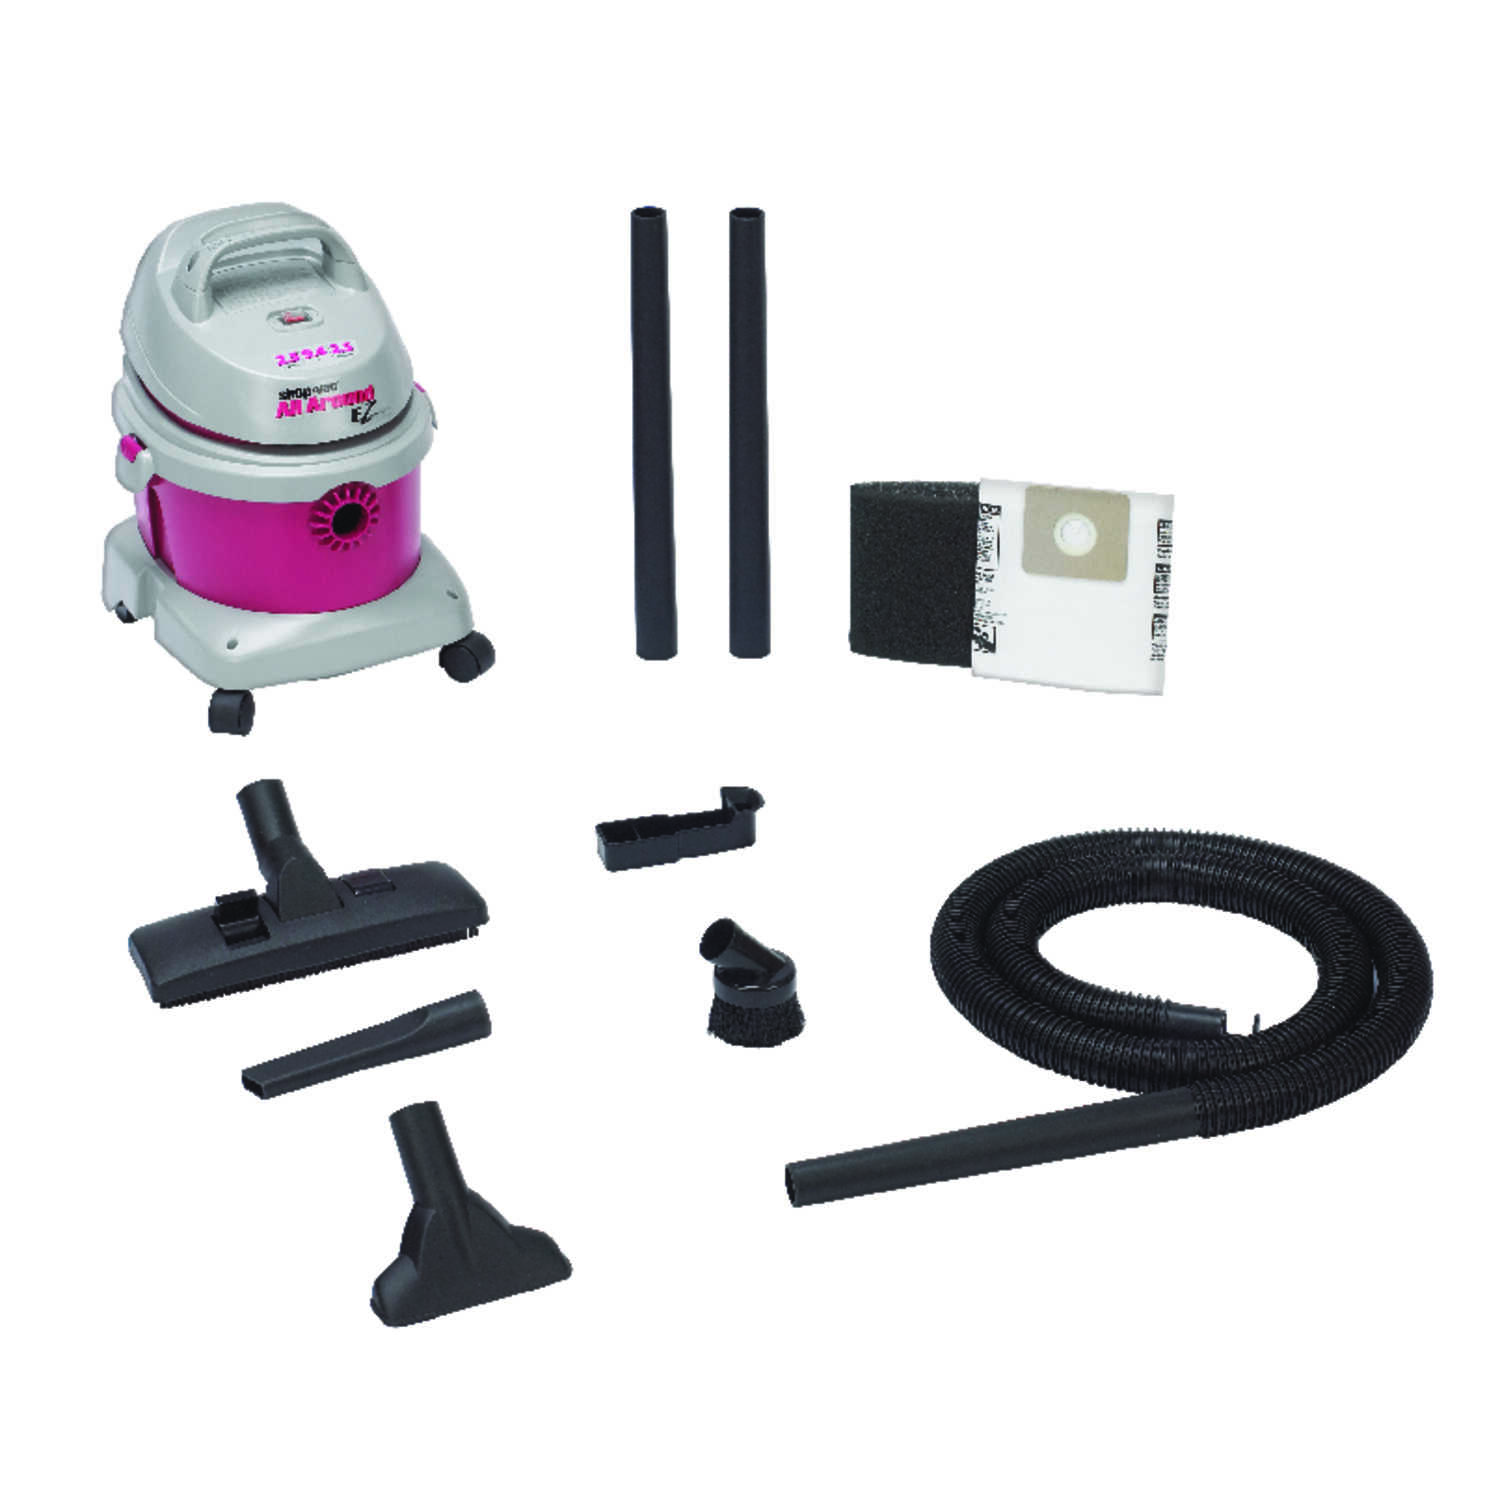 Shop-Vac  All Around EZ  2.5 gal. Corded  Wet/Dry Vacuum  2.5 hp 120 volts Pink  12 lb.